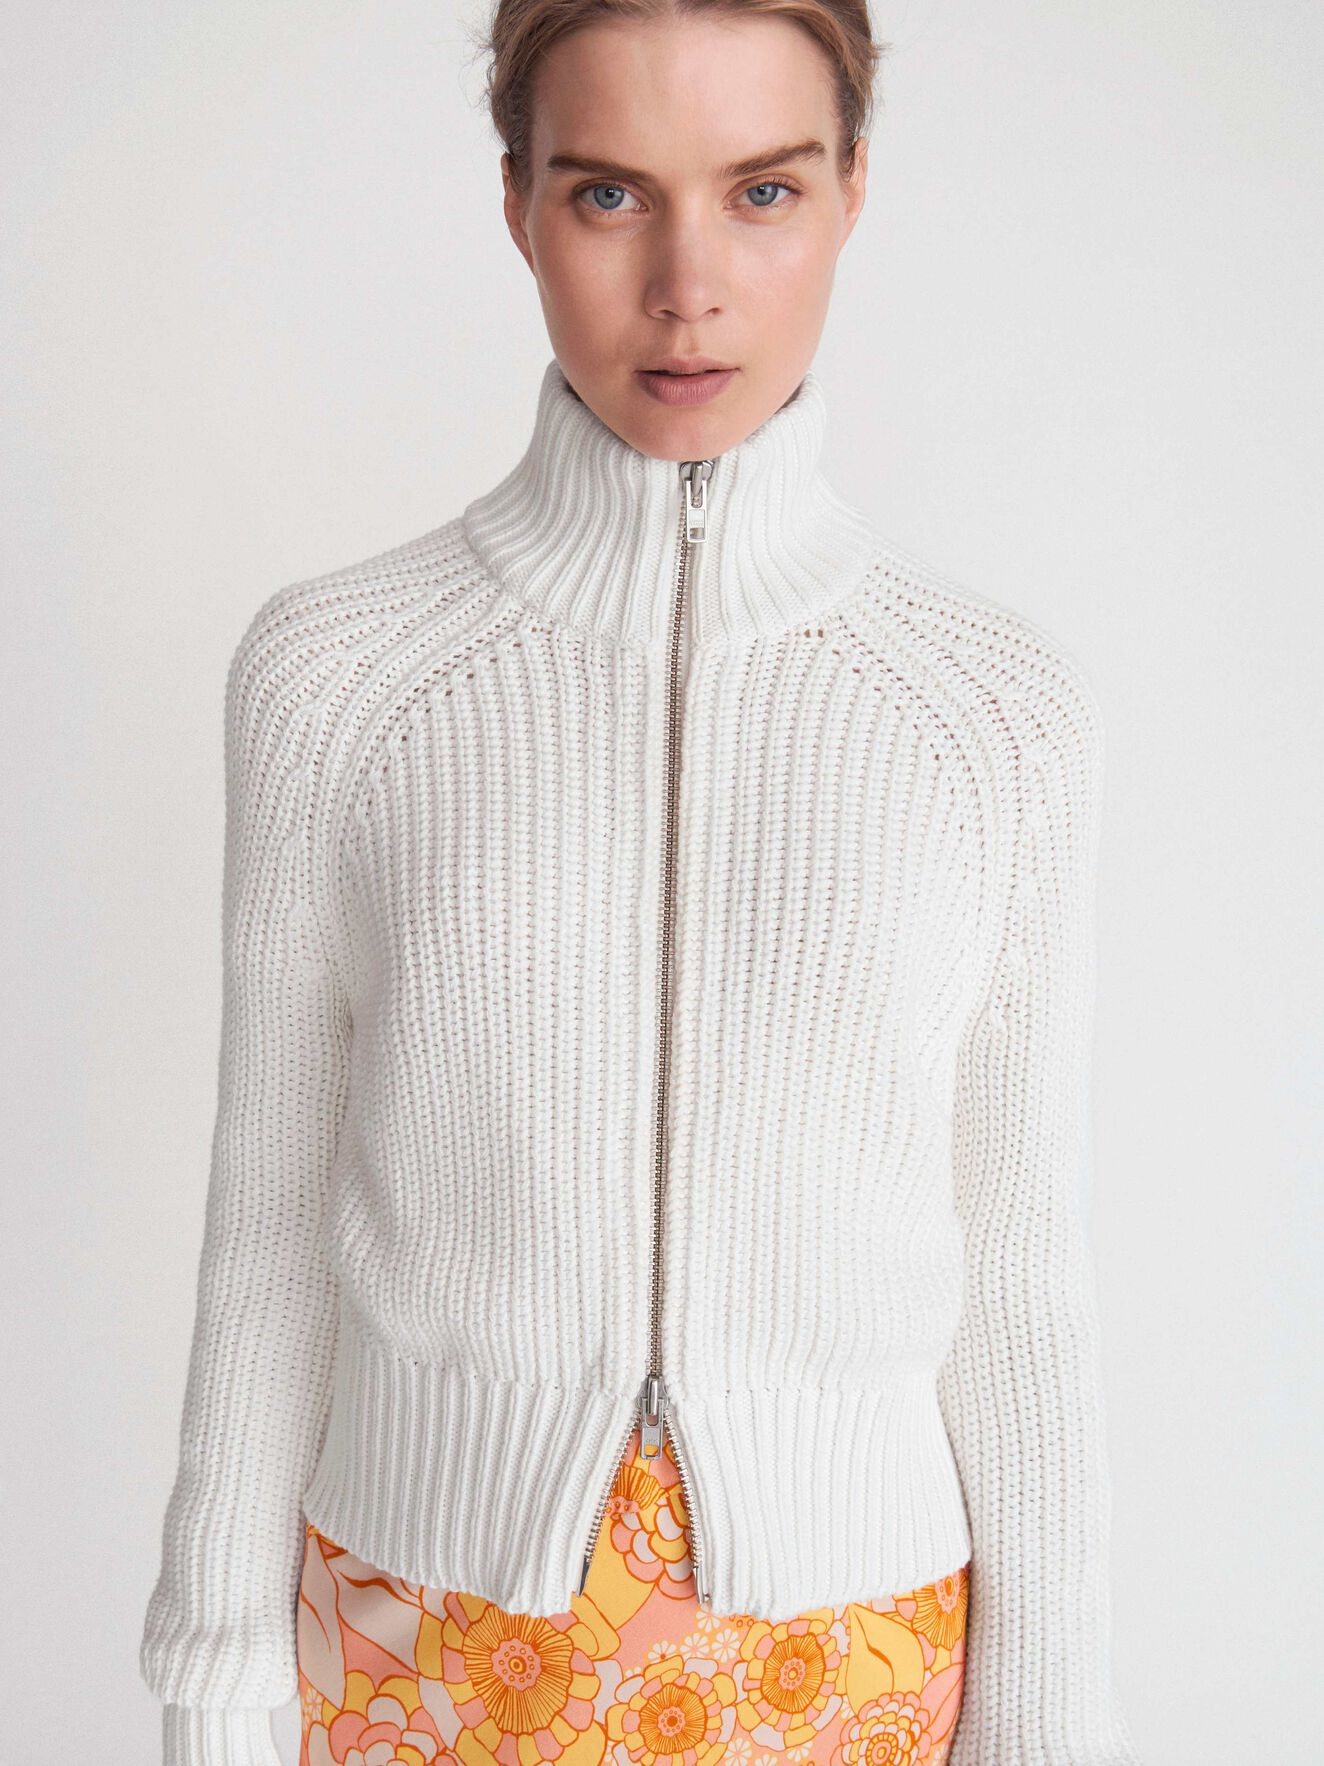 Cabalia Cardigan in Star White from Tiger of Sweden